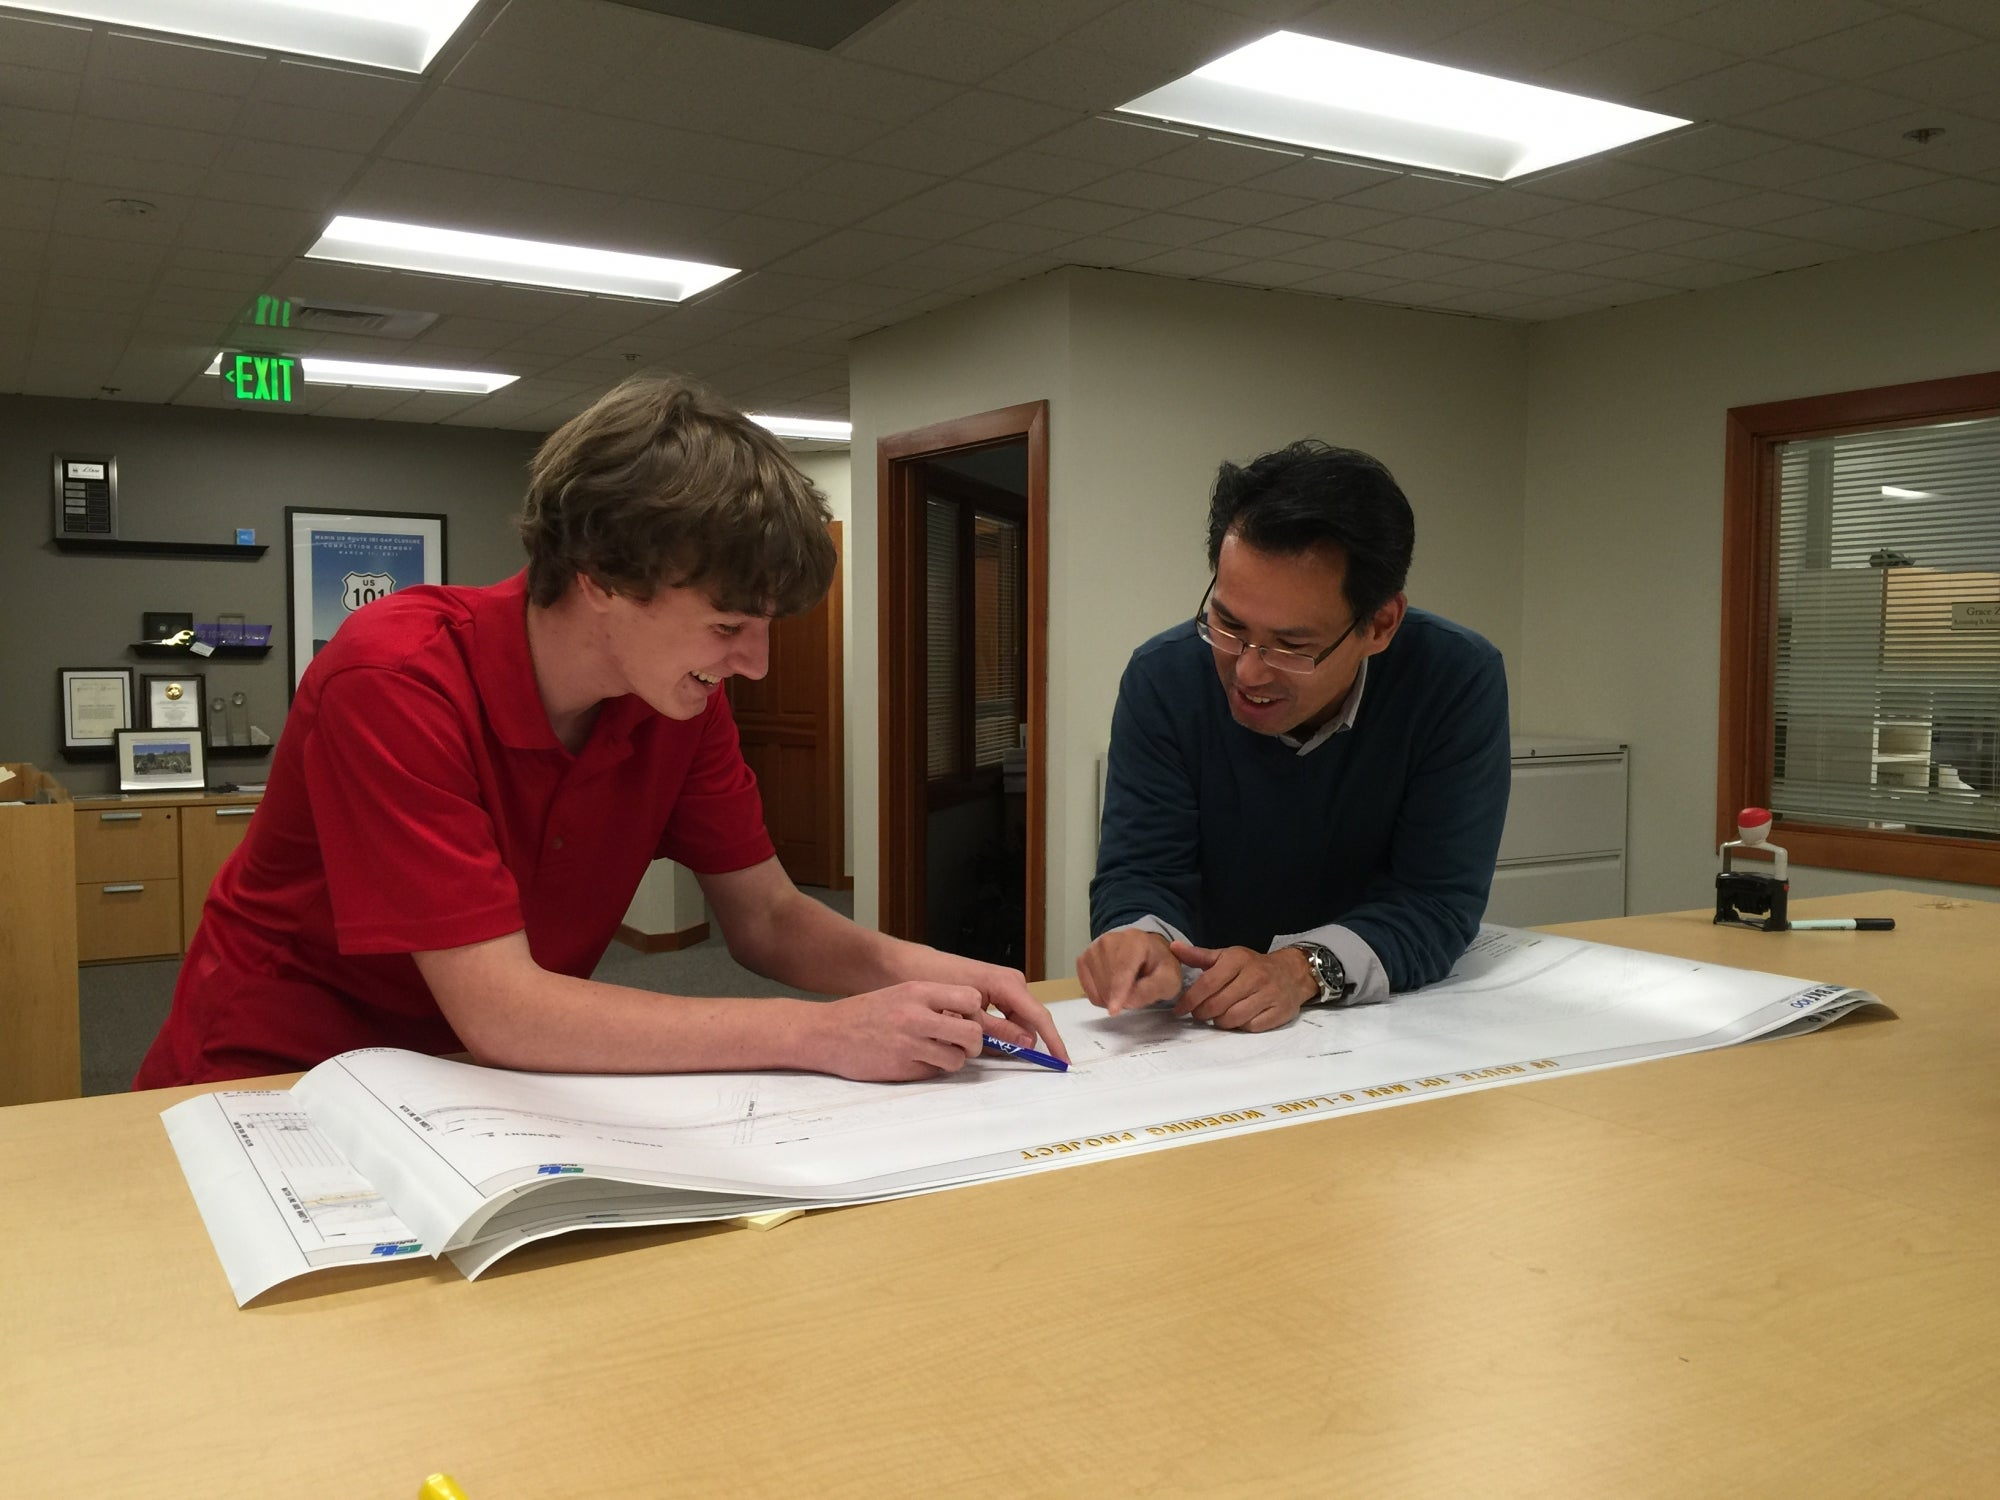 Ben Pearson, Intern for the Transportation Authority of Marin, Marin County